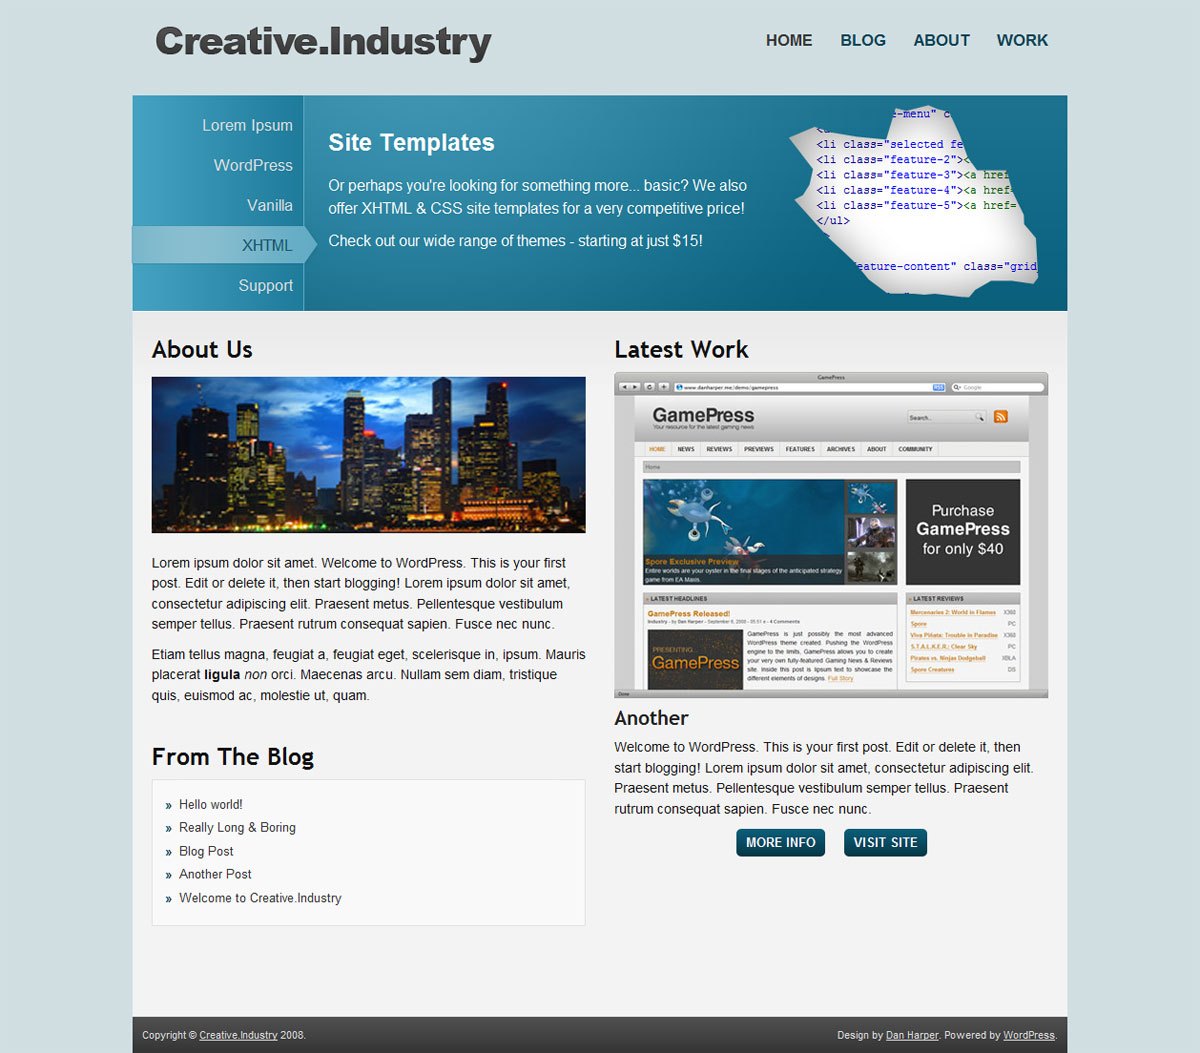 Creative.Industry - Homepage with blue colour scheme (default)